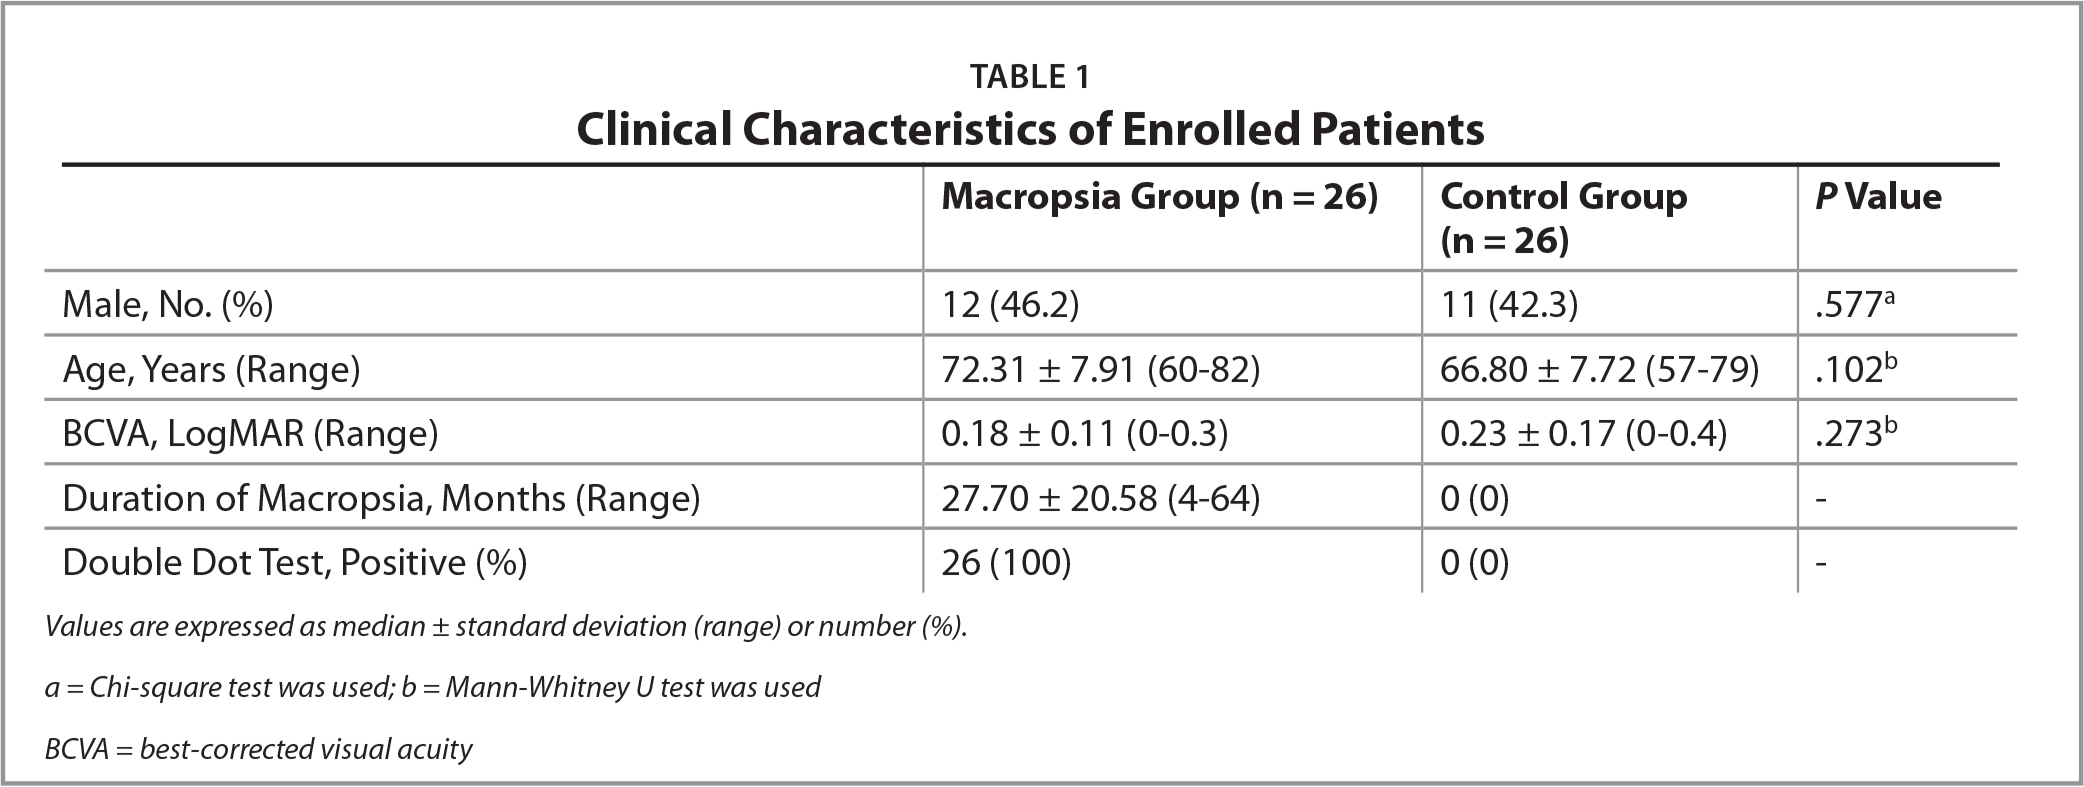 Clinical Characteristics of Enrolled Patients